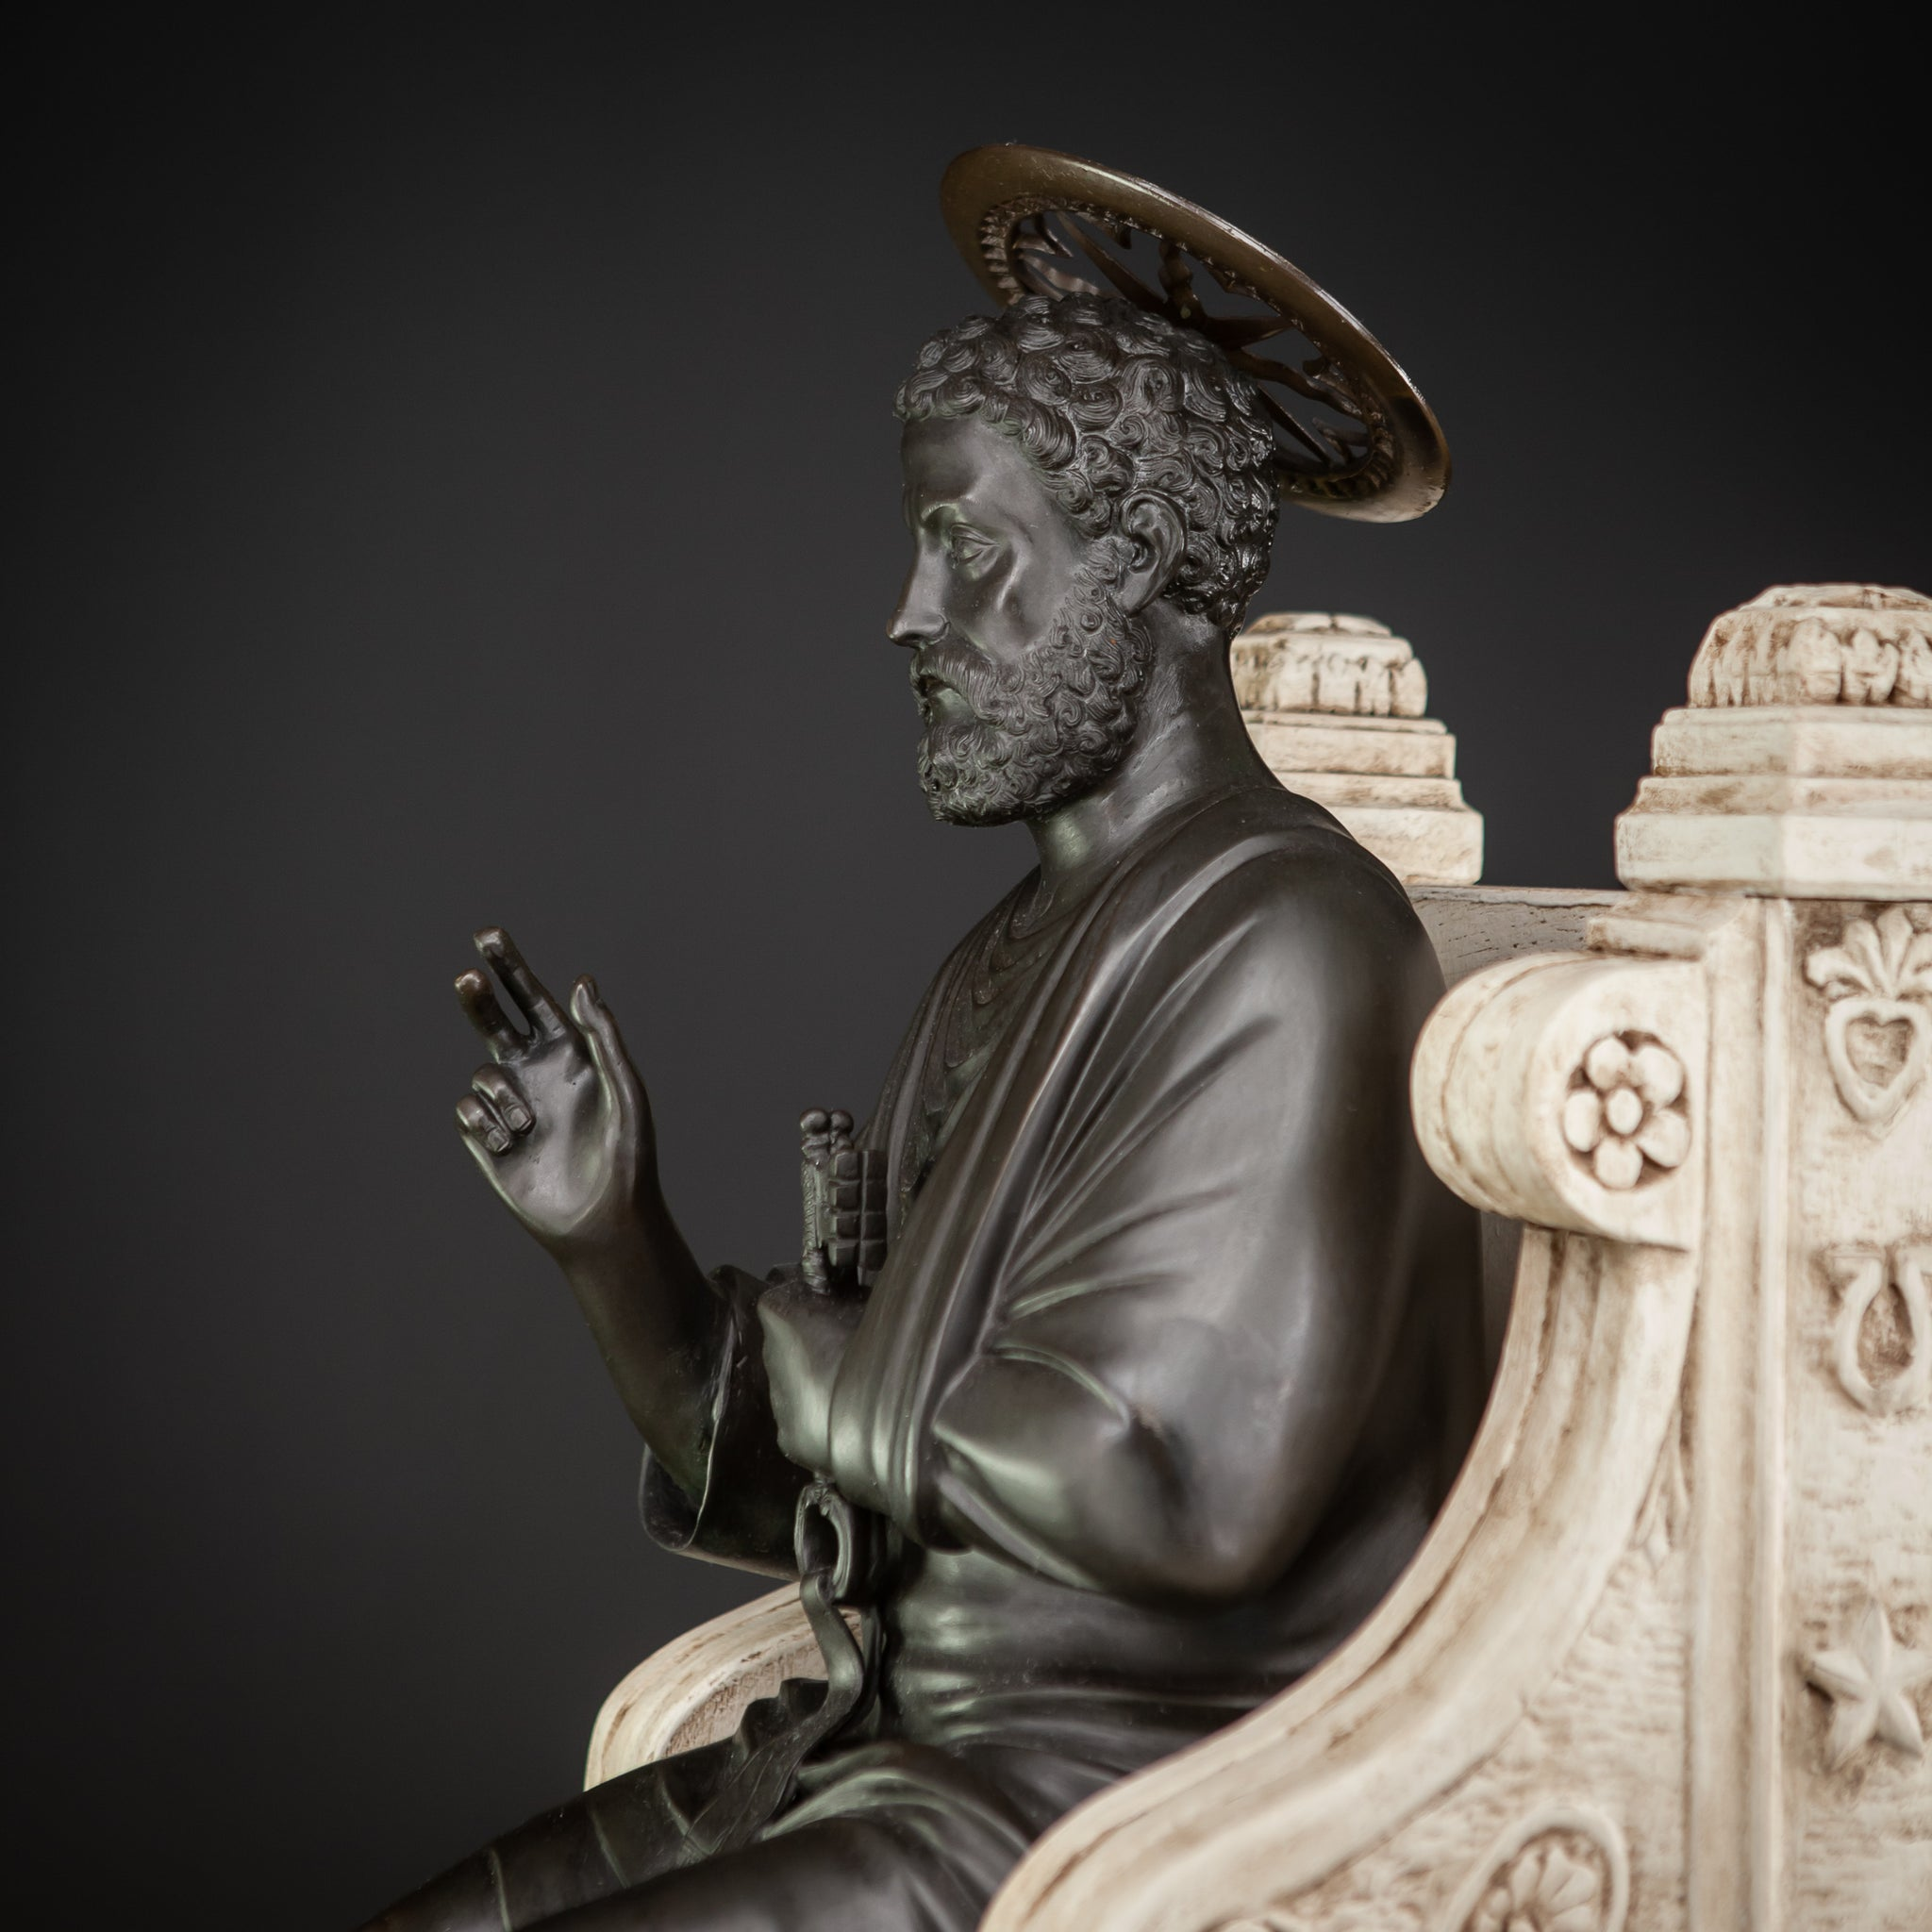 St Peter Bronze Sculpture on Wooden Chair 37.4""